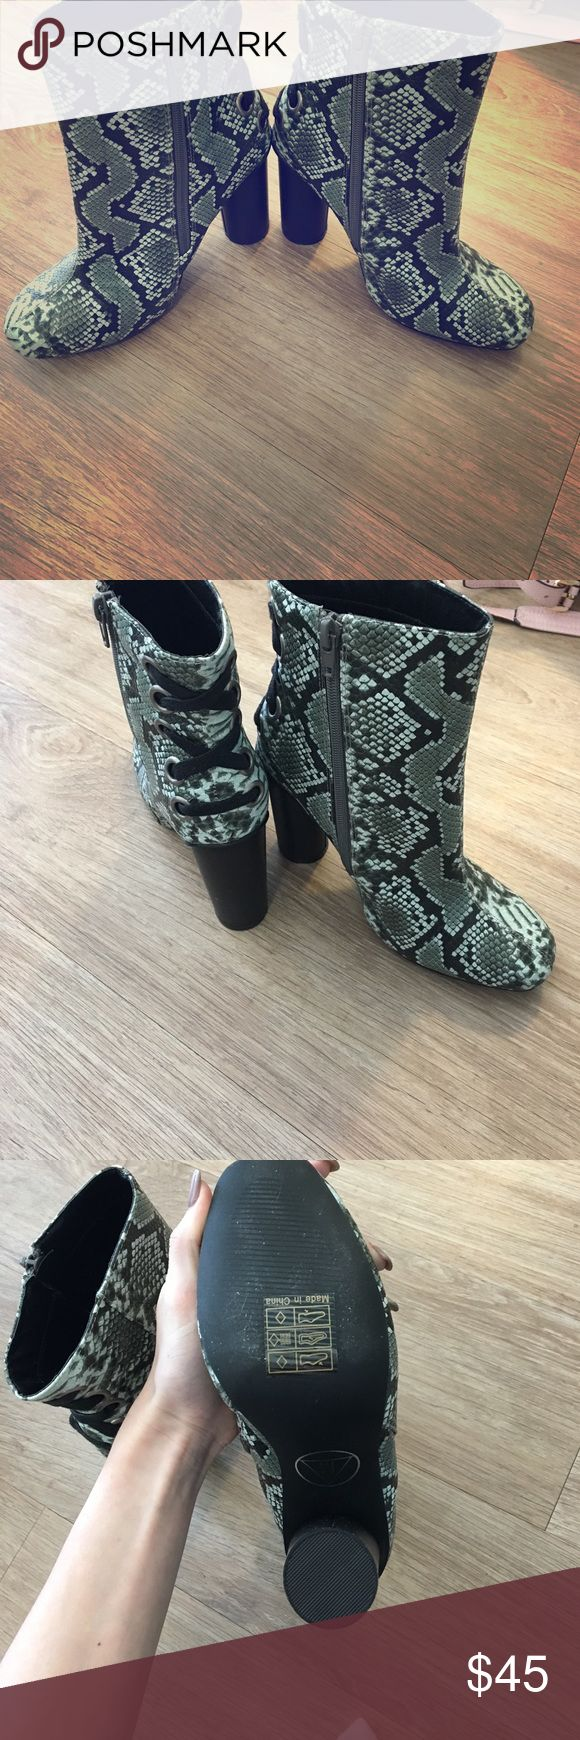 Misguided python print boots Unique laced up back python printed boots never worn, no box included misguided Shoes Heeled Boots